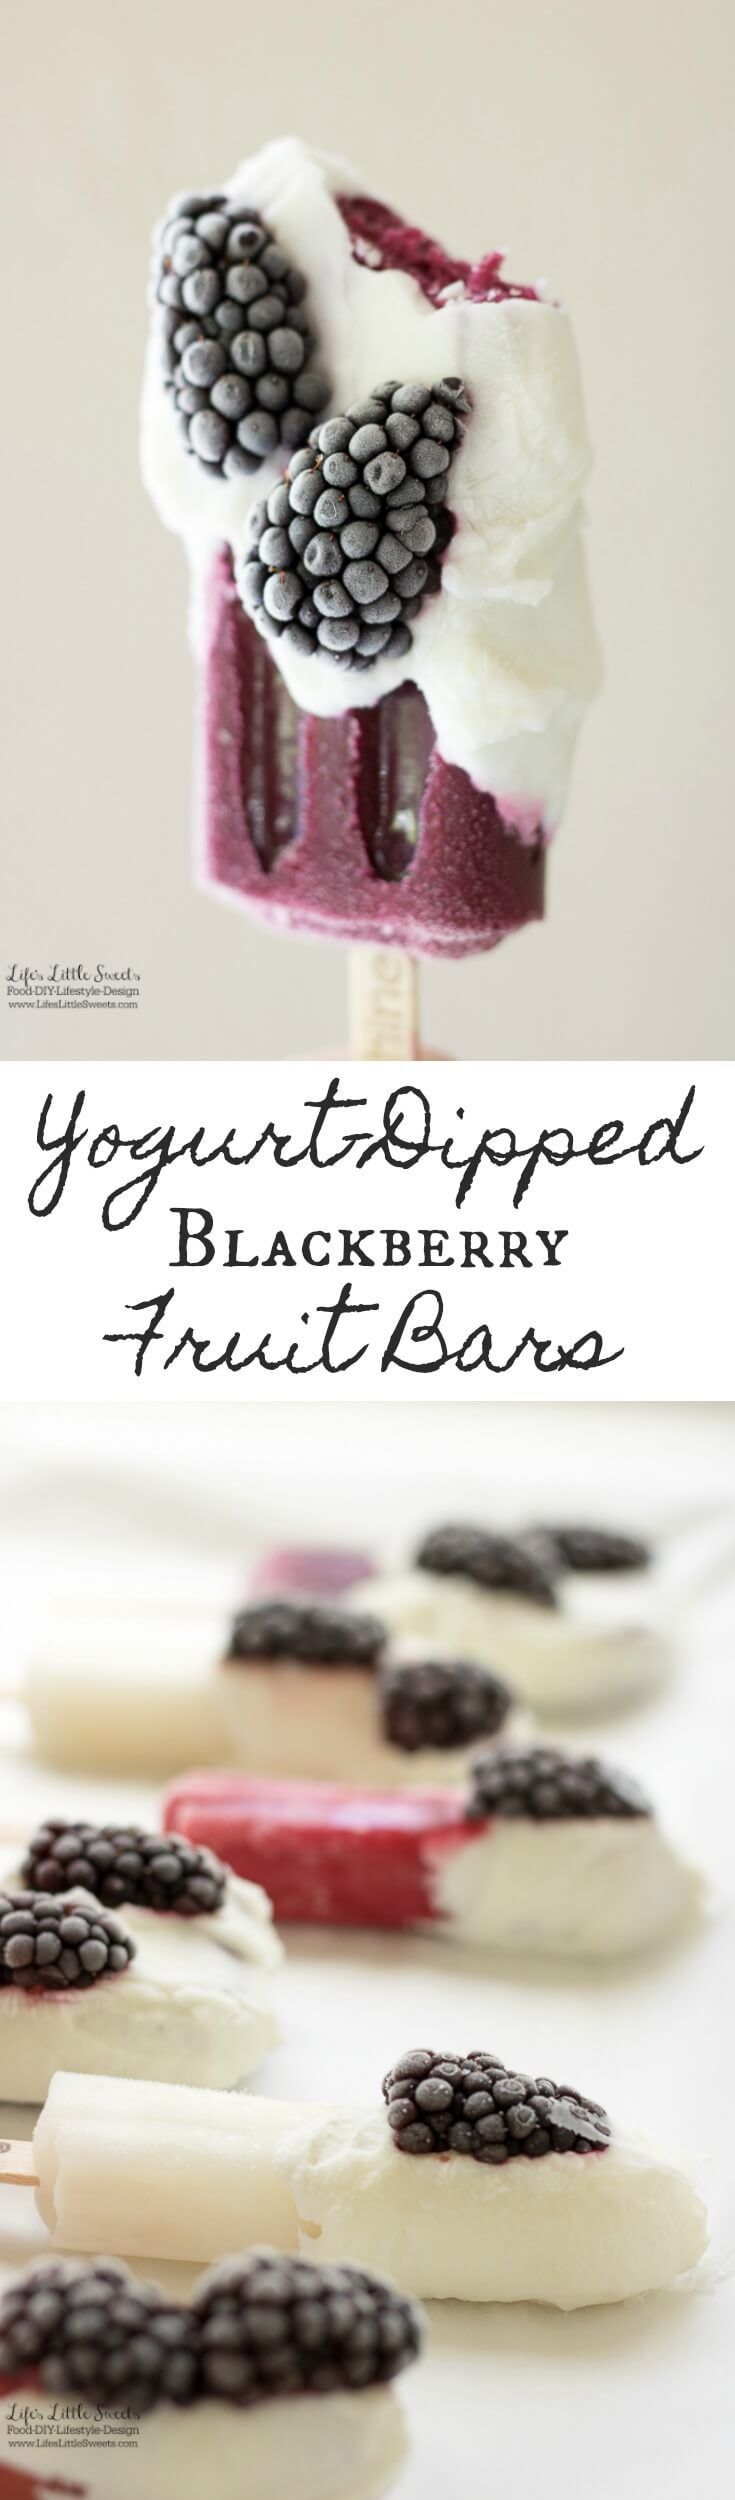 These Yogurt-Dipped Blackberry Fruit Bars are the perfect snack after a meal or between meals. They are made with blackberries, Greek yogurt and Outshine® Fruit Bars. #SnackBrighter #ad